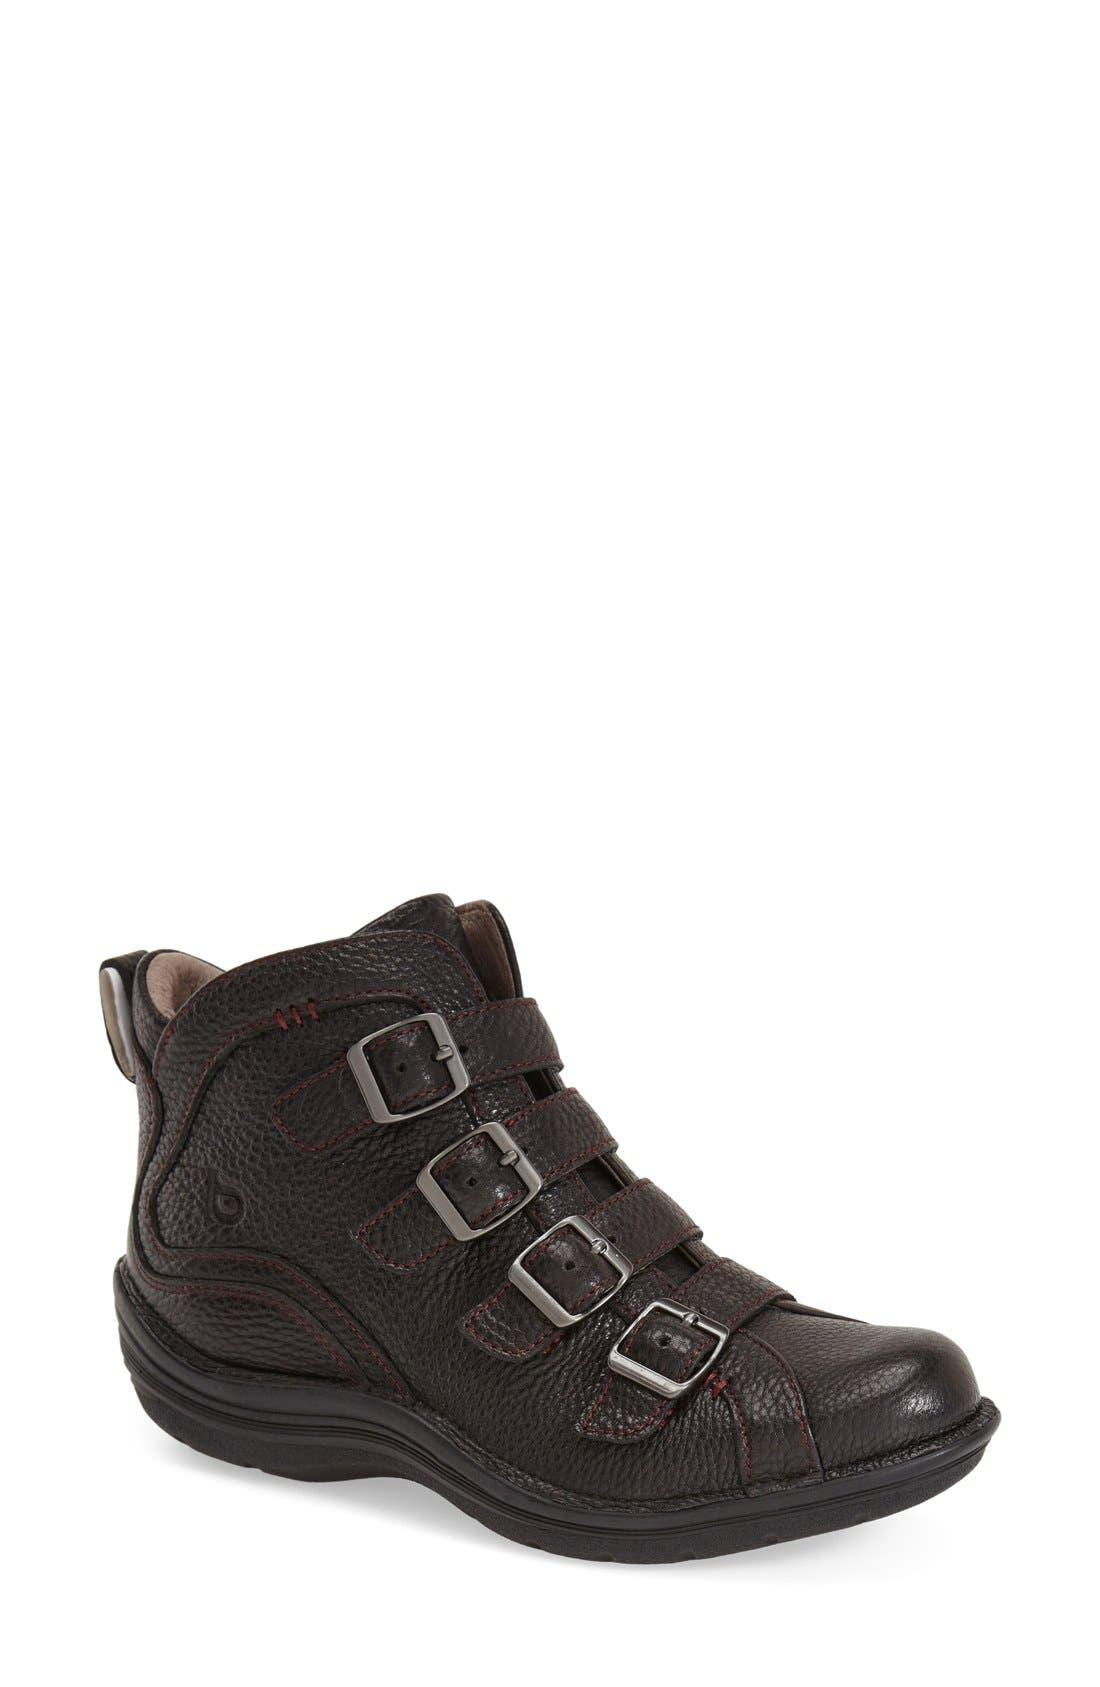 Alternate Image 1 Selected - bionica'Orion' Bootie(Women)